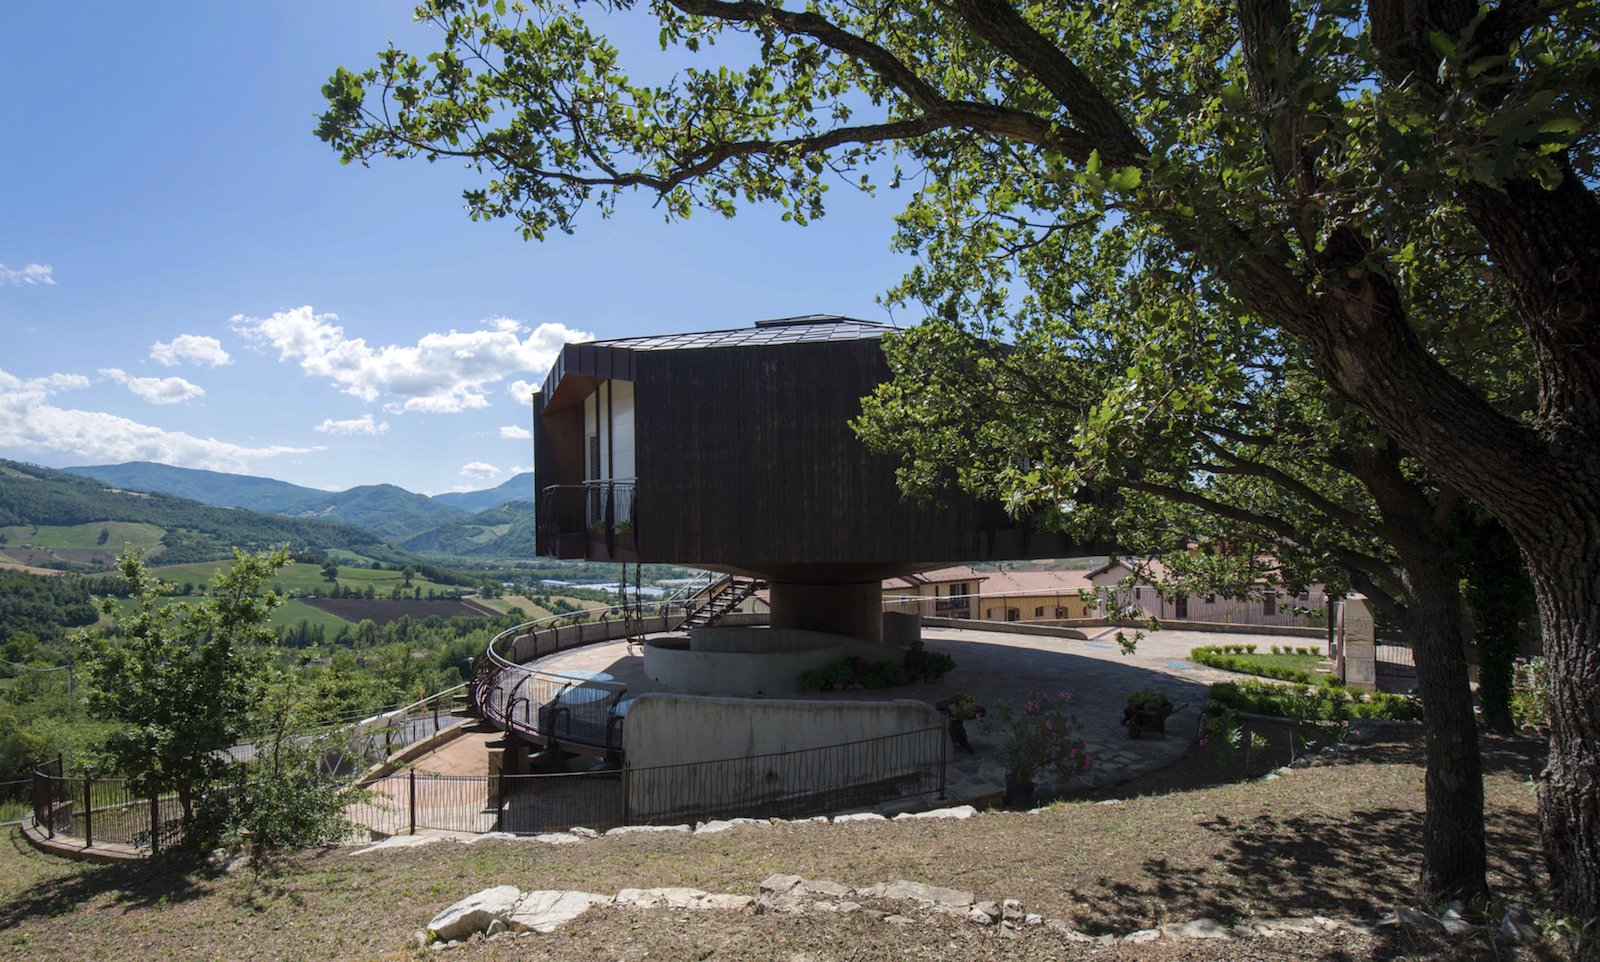 Exterior, Wood Siding Material, Metal Roof Material, House Building Type, and Prefab Building Type Solar panels are integrated into the metal roof.  Photo 5 of 8 in This Octagonal Prefab in Italy Rotates a Full 360 Degrees to Follow the Sun